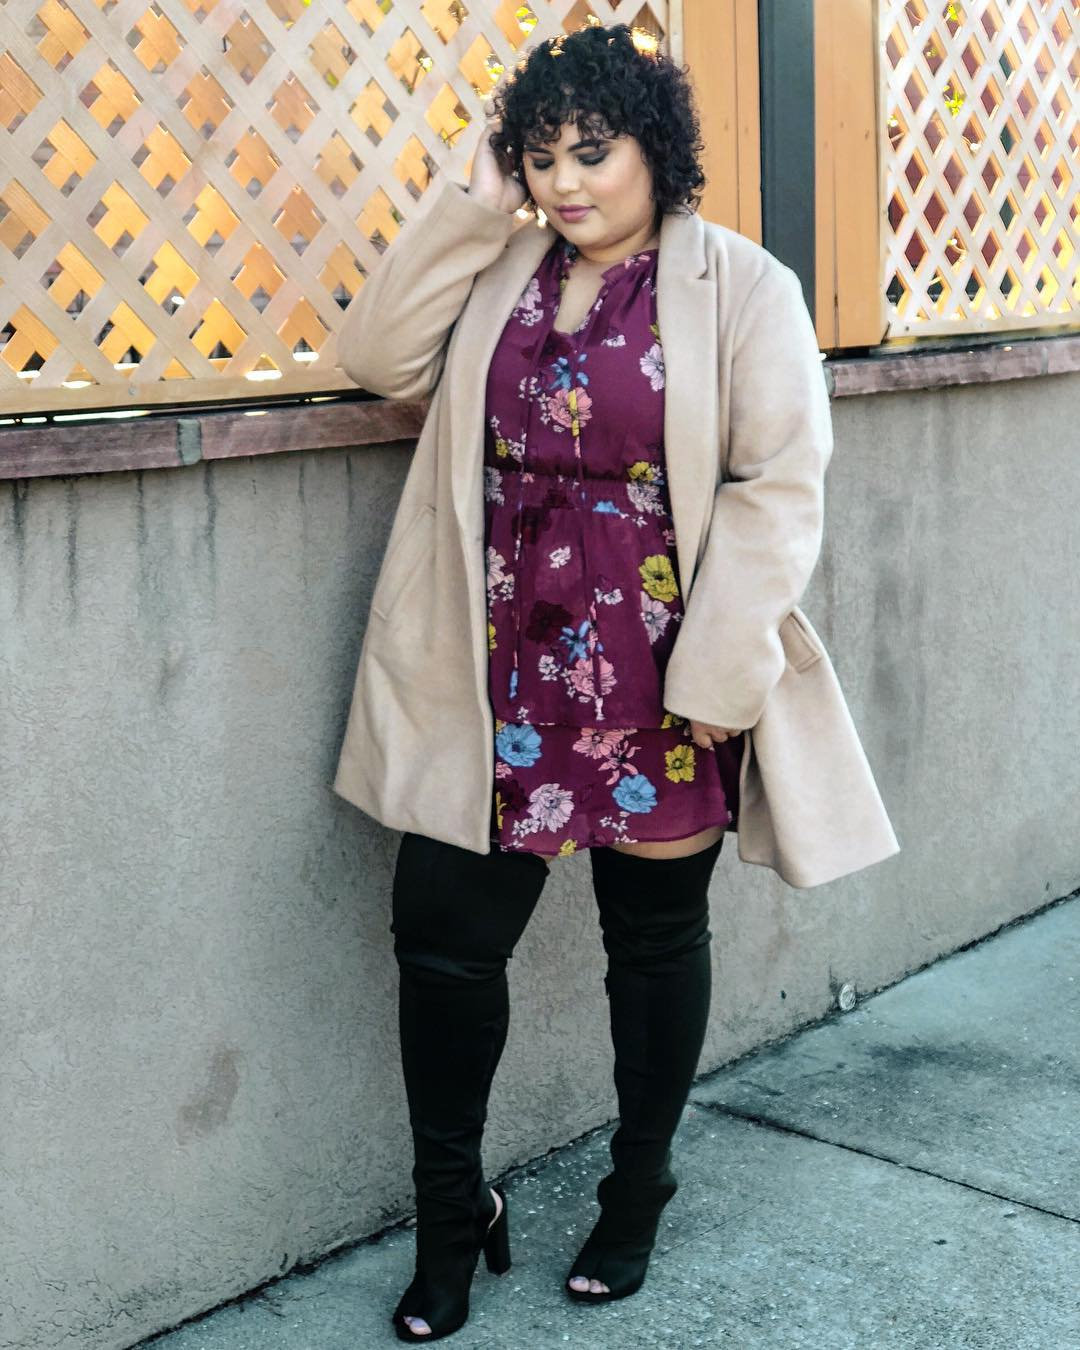 Dashing Floral Top, Warm Coat With Thigh Boots